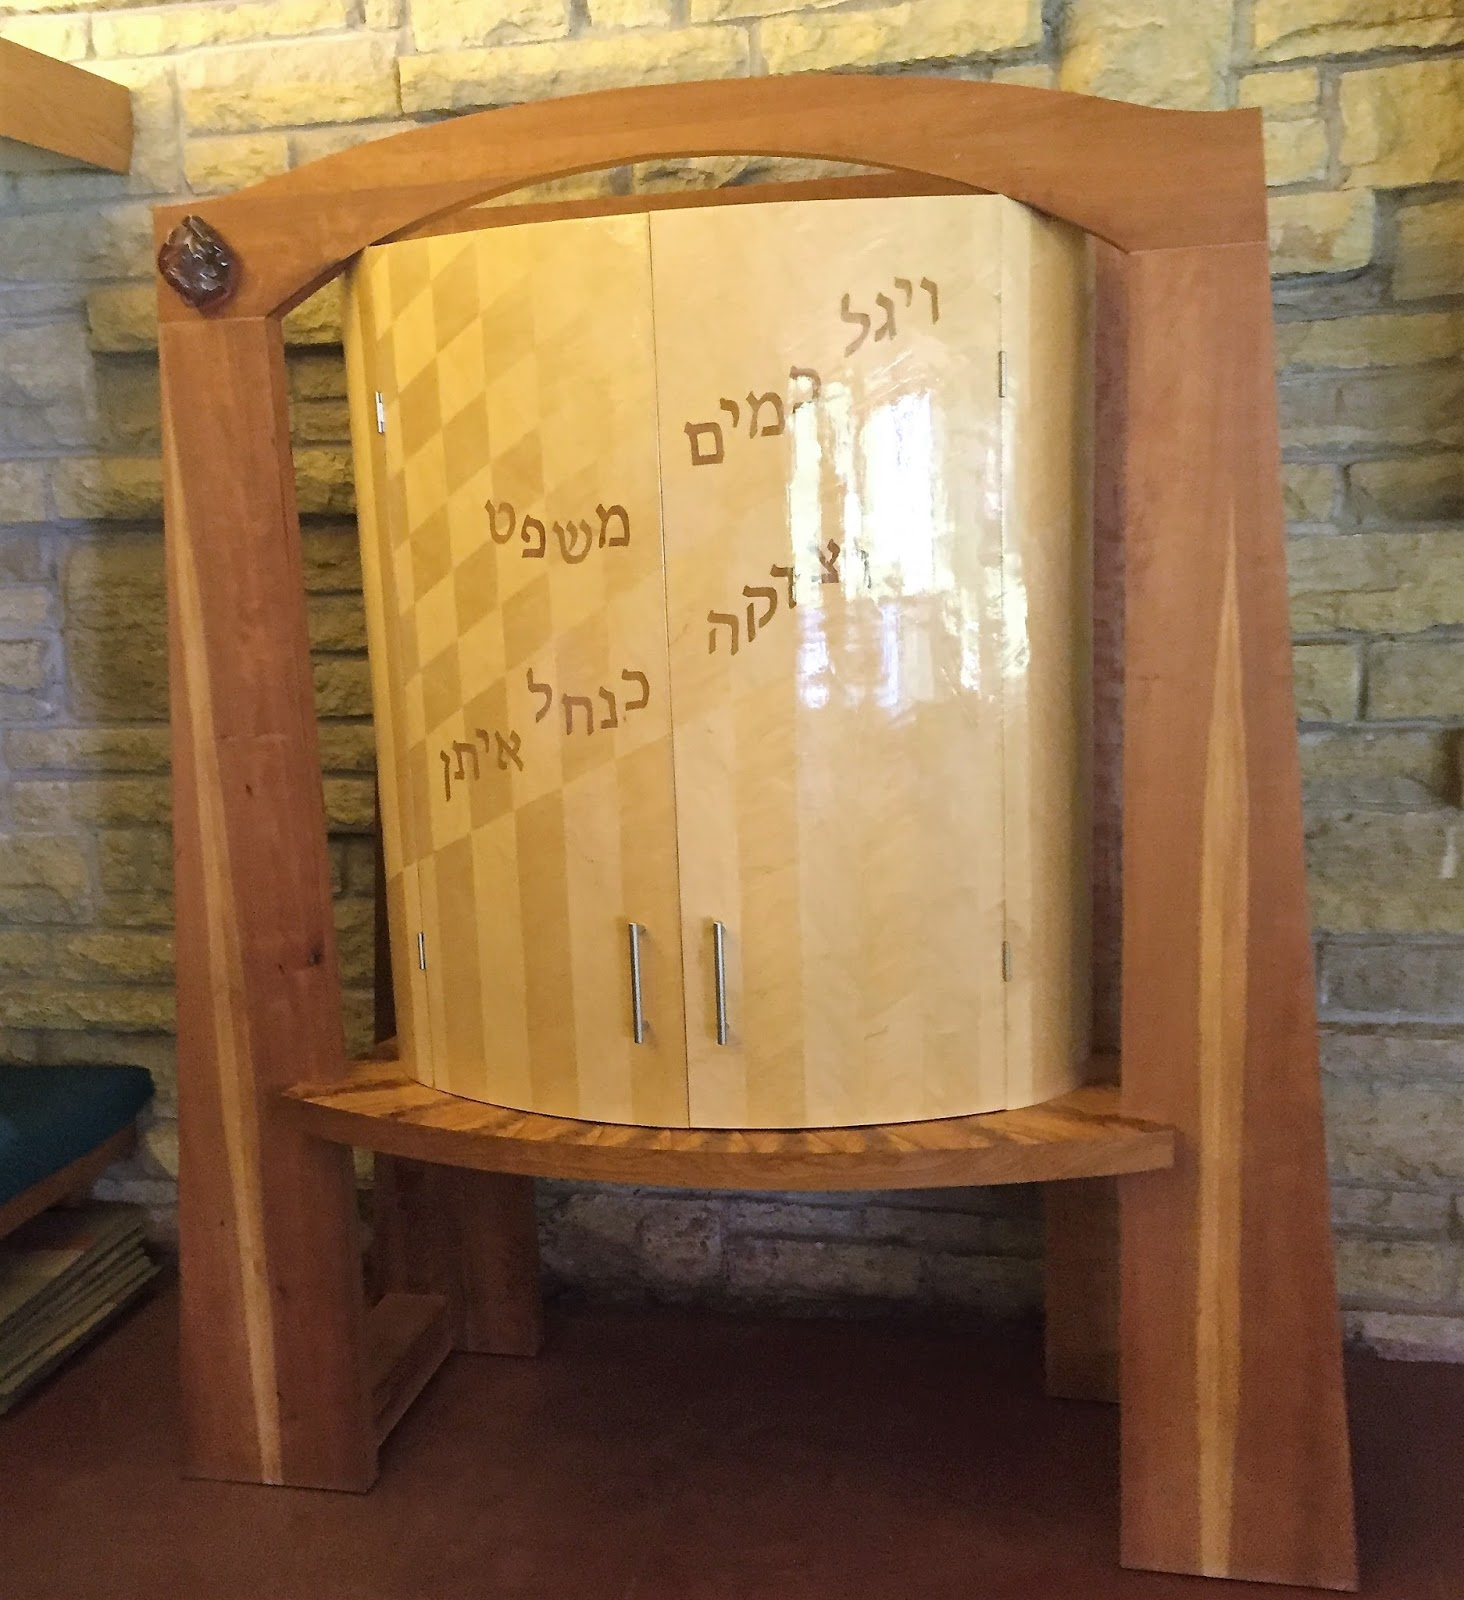 Our Guide Pointed Out The Torah Cabinet In A Room At The End Of The Long  Hallway: